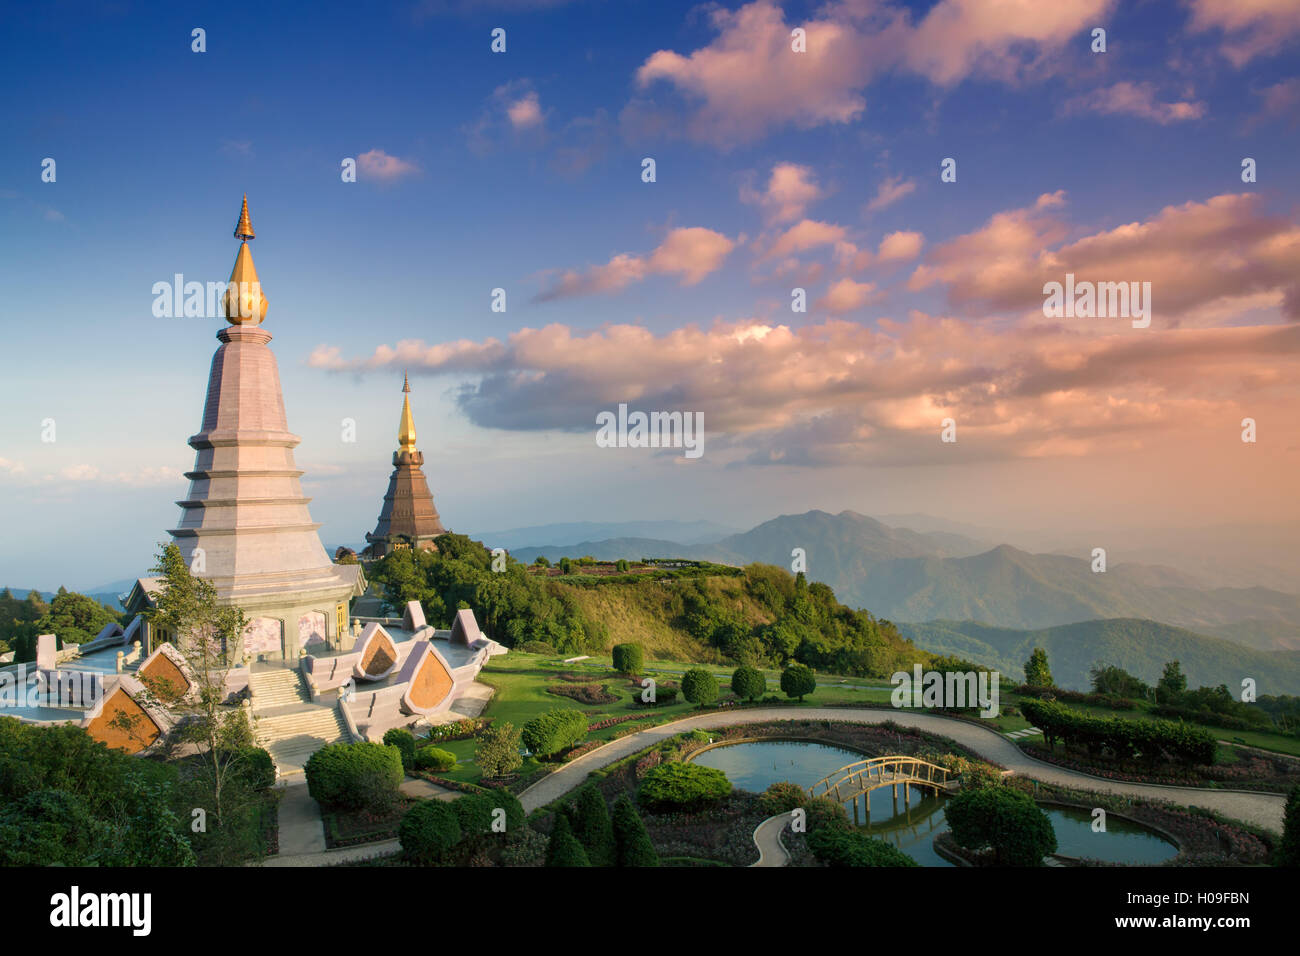 Temples at Doi Inthanon, the highest peak in Thailand, Chiang Mai Province, Thailand, Southeast Asia, Asia - Stock Image